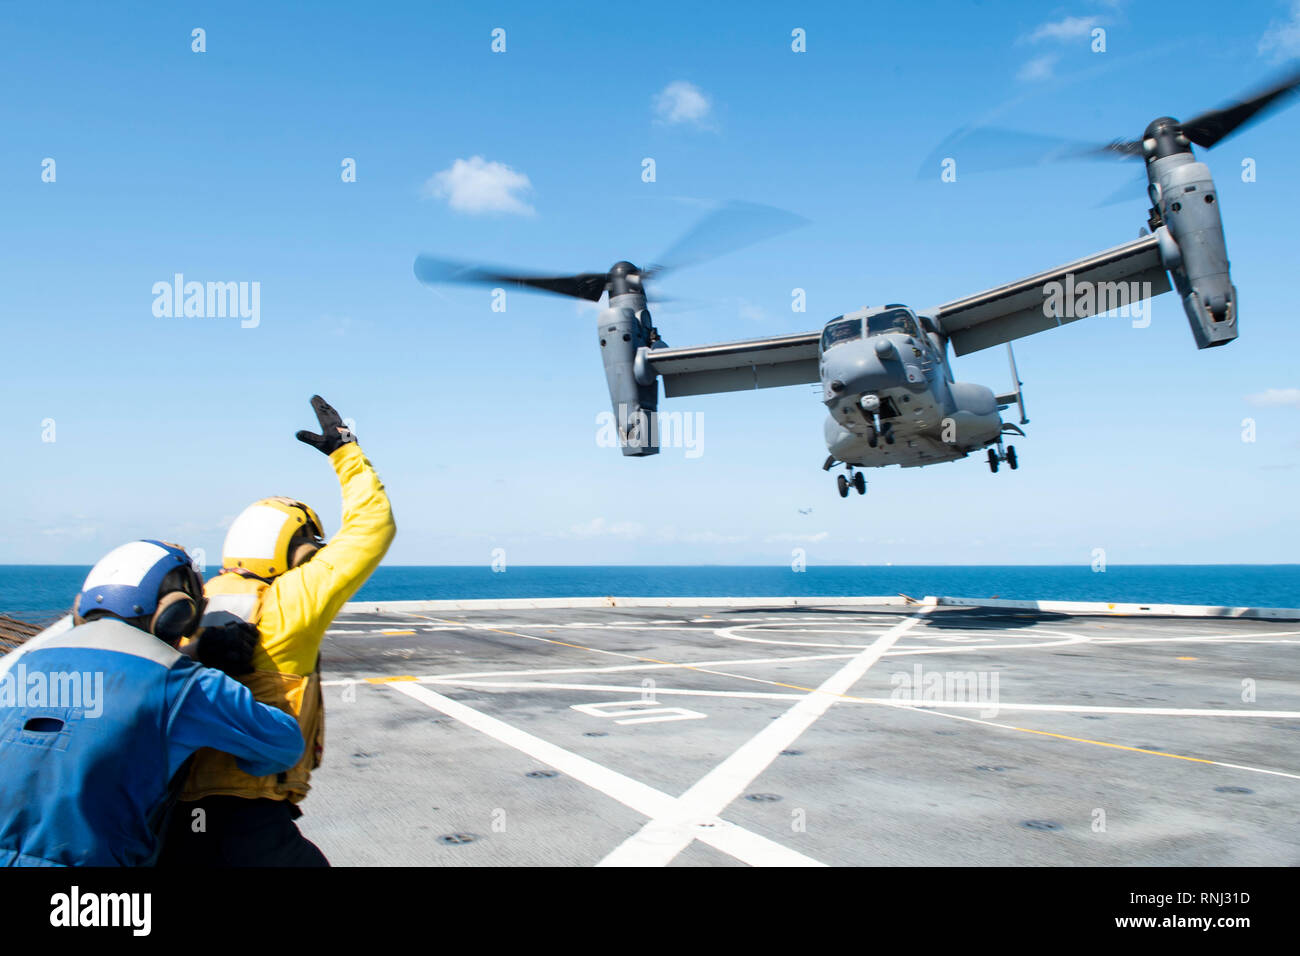 190218-N-DX072-1683 GULF OF THAILAND (Feb. 18, 2019) – Aviation Boatwain's Mate (Handling) 3rd Class Walter Rutherford, from Cheyenne, Wyo., signals to a CV-22 Osprey helicopter, assigned to the 353rd Special Operations Group, as it takes off from the flight deck of the amphibious transport dock ship USS Green Bay (LPD 20). Green Bay, part of the Wasp Amphibious Ready Group, with embarked 31st Marine Expeditionary Unit (MEU), is in Thailand to participate in Exercise Cobra Gold 2019. Cobra Gold is a multinational exercise co-sponsored by Thailand and the United States that is designed to advan - Stock Image